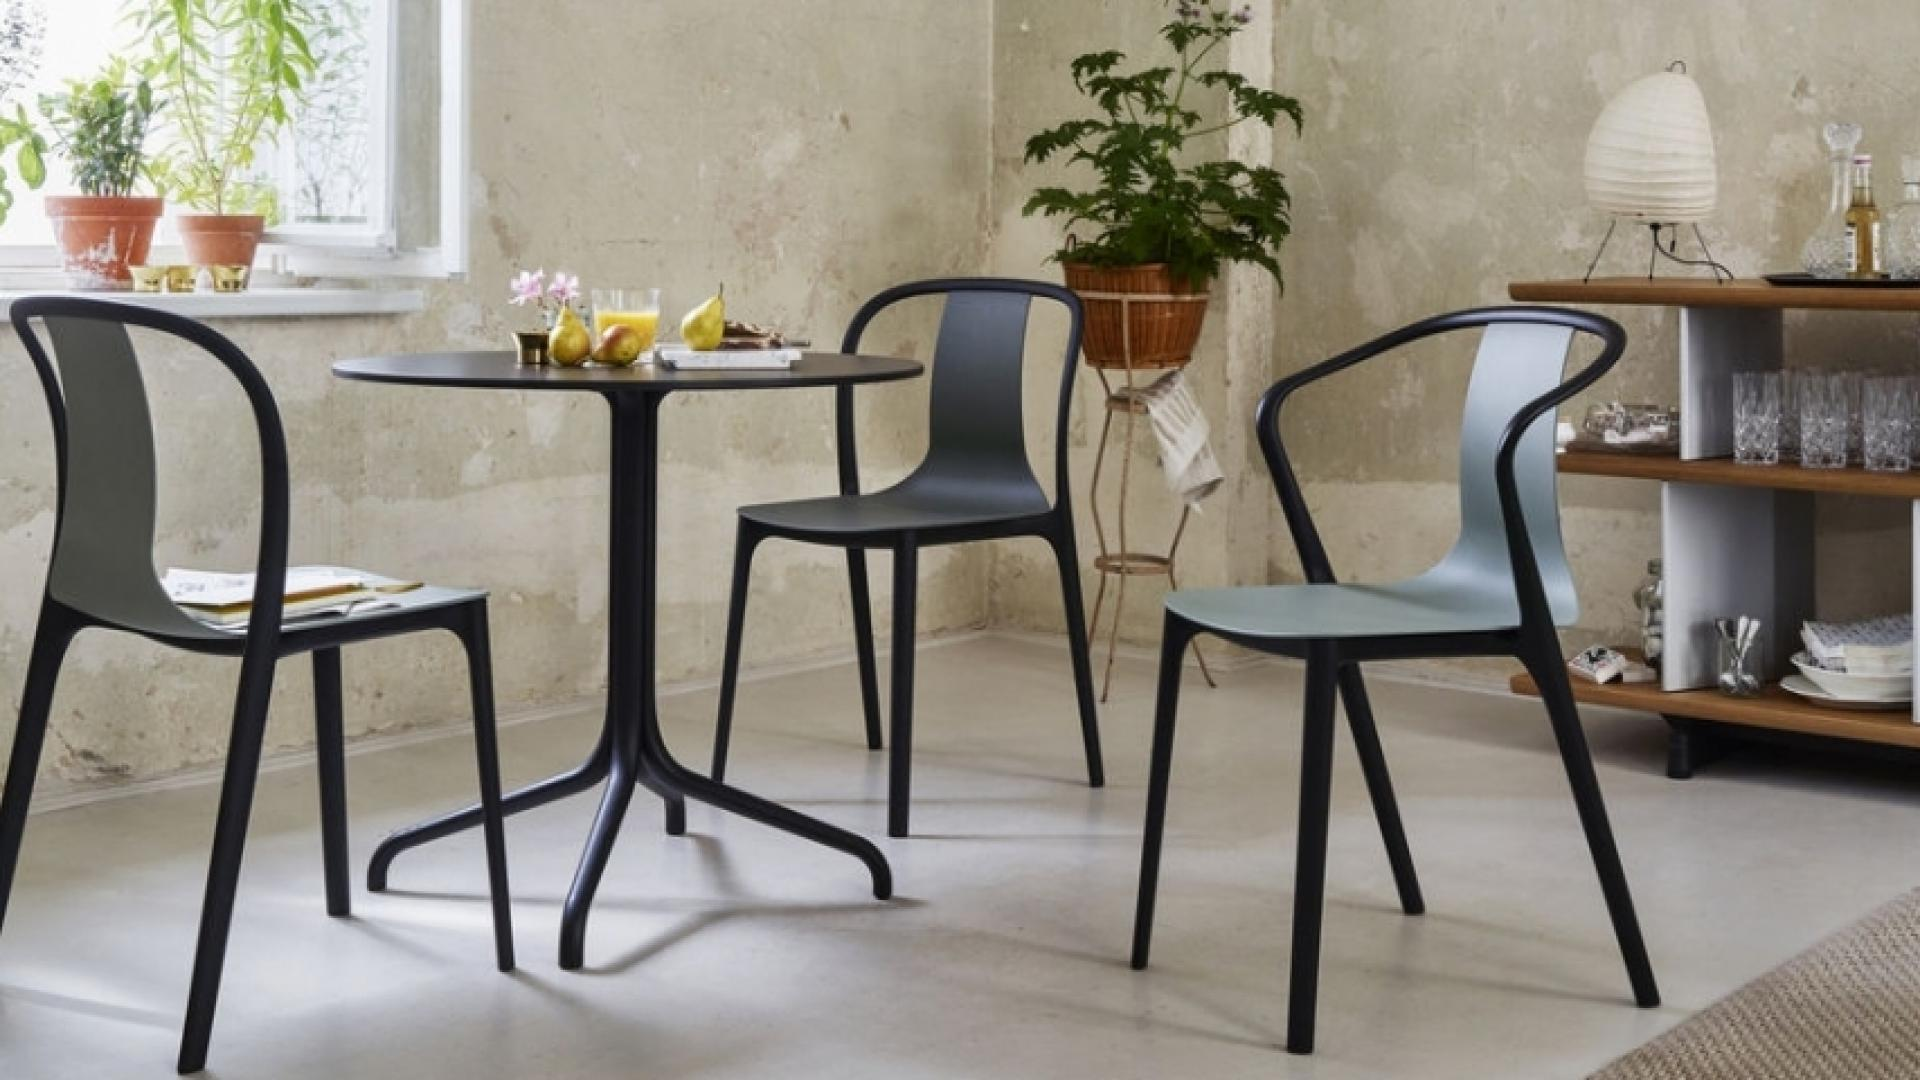 Belleville_Chair_Belleville_Armchair_Belleville_Table_Round_1097306_preview.jpg